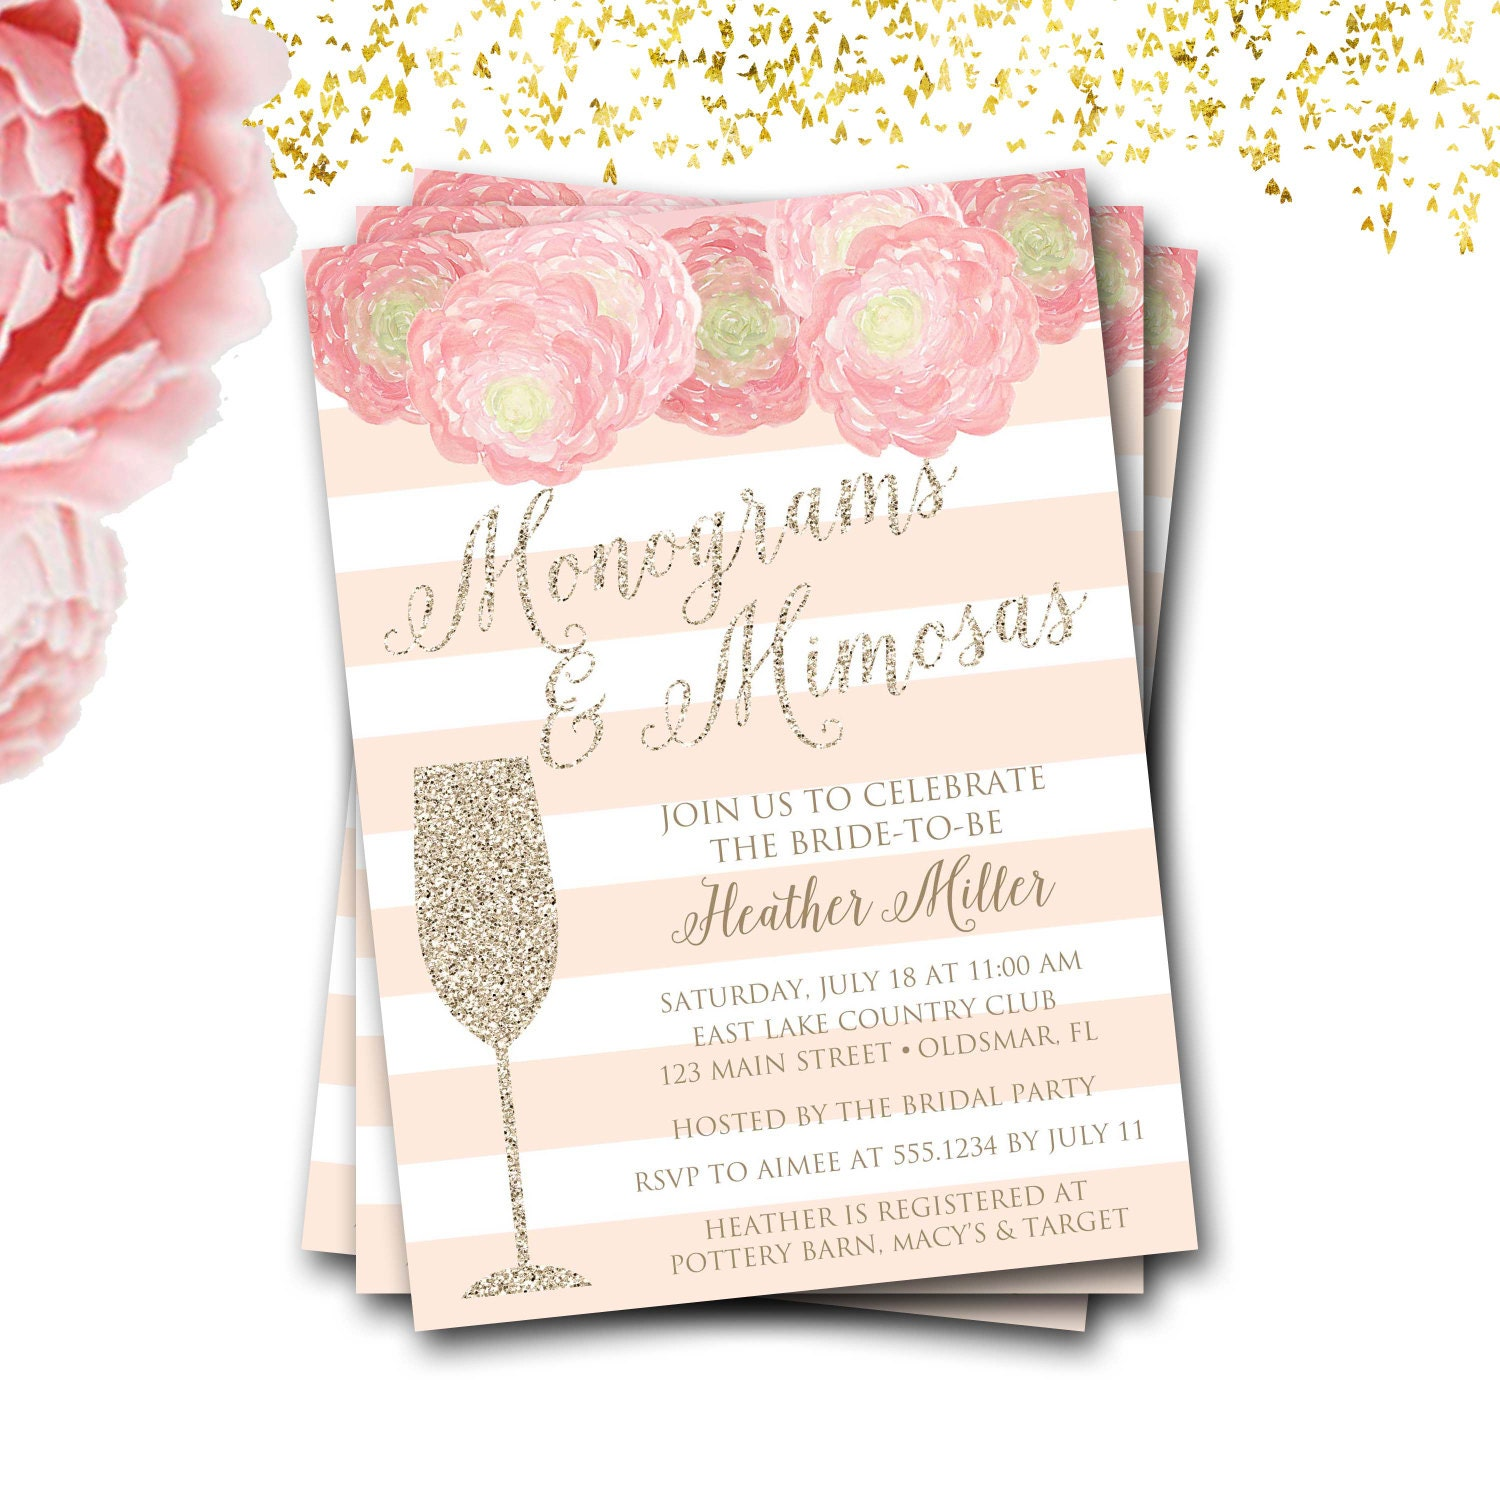 d8b4944c9b0b Monograms And Mimosas Bridal Shower Invitation Monograms And